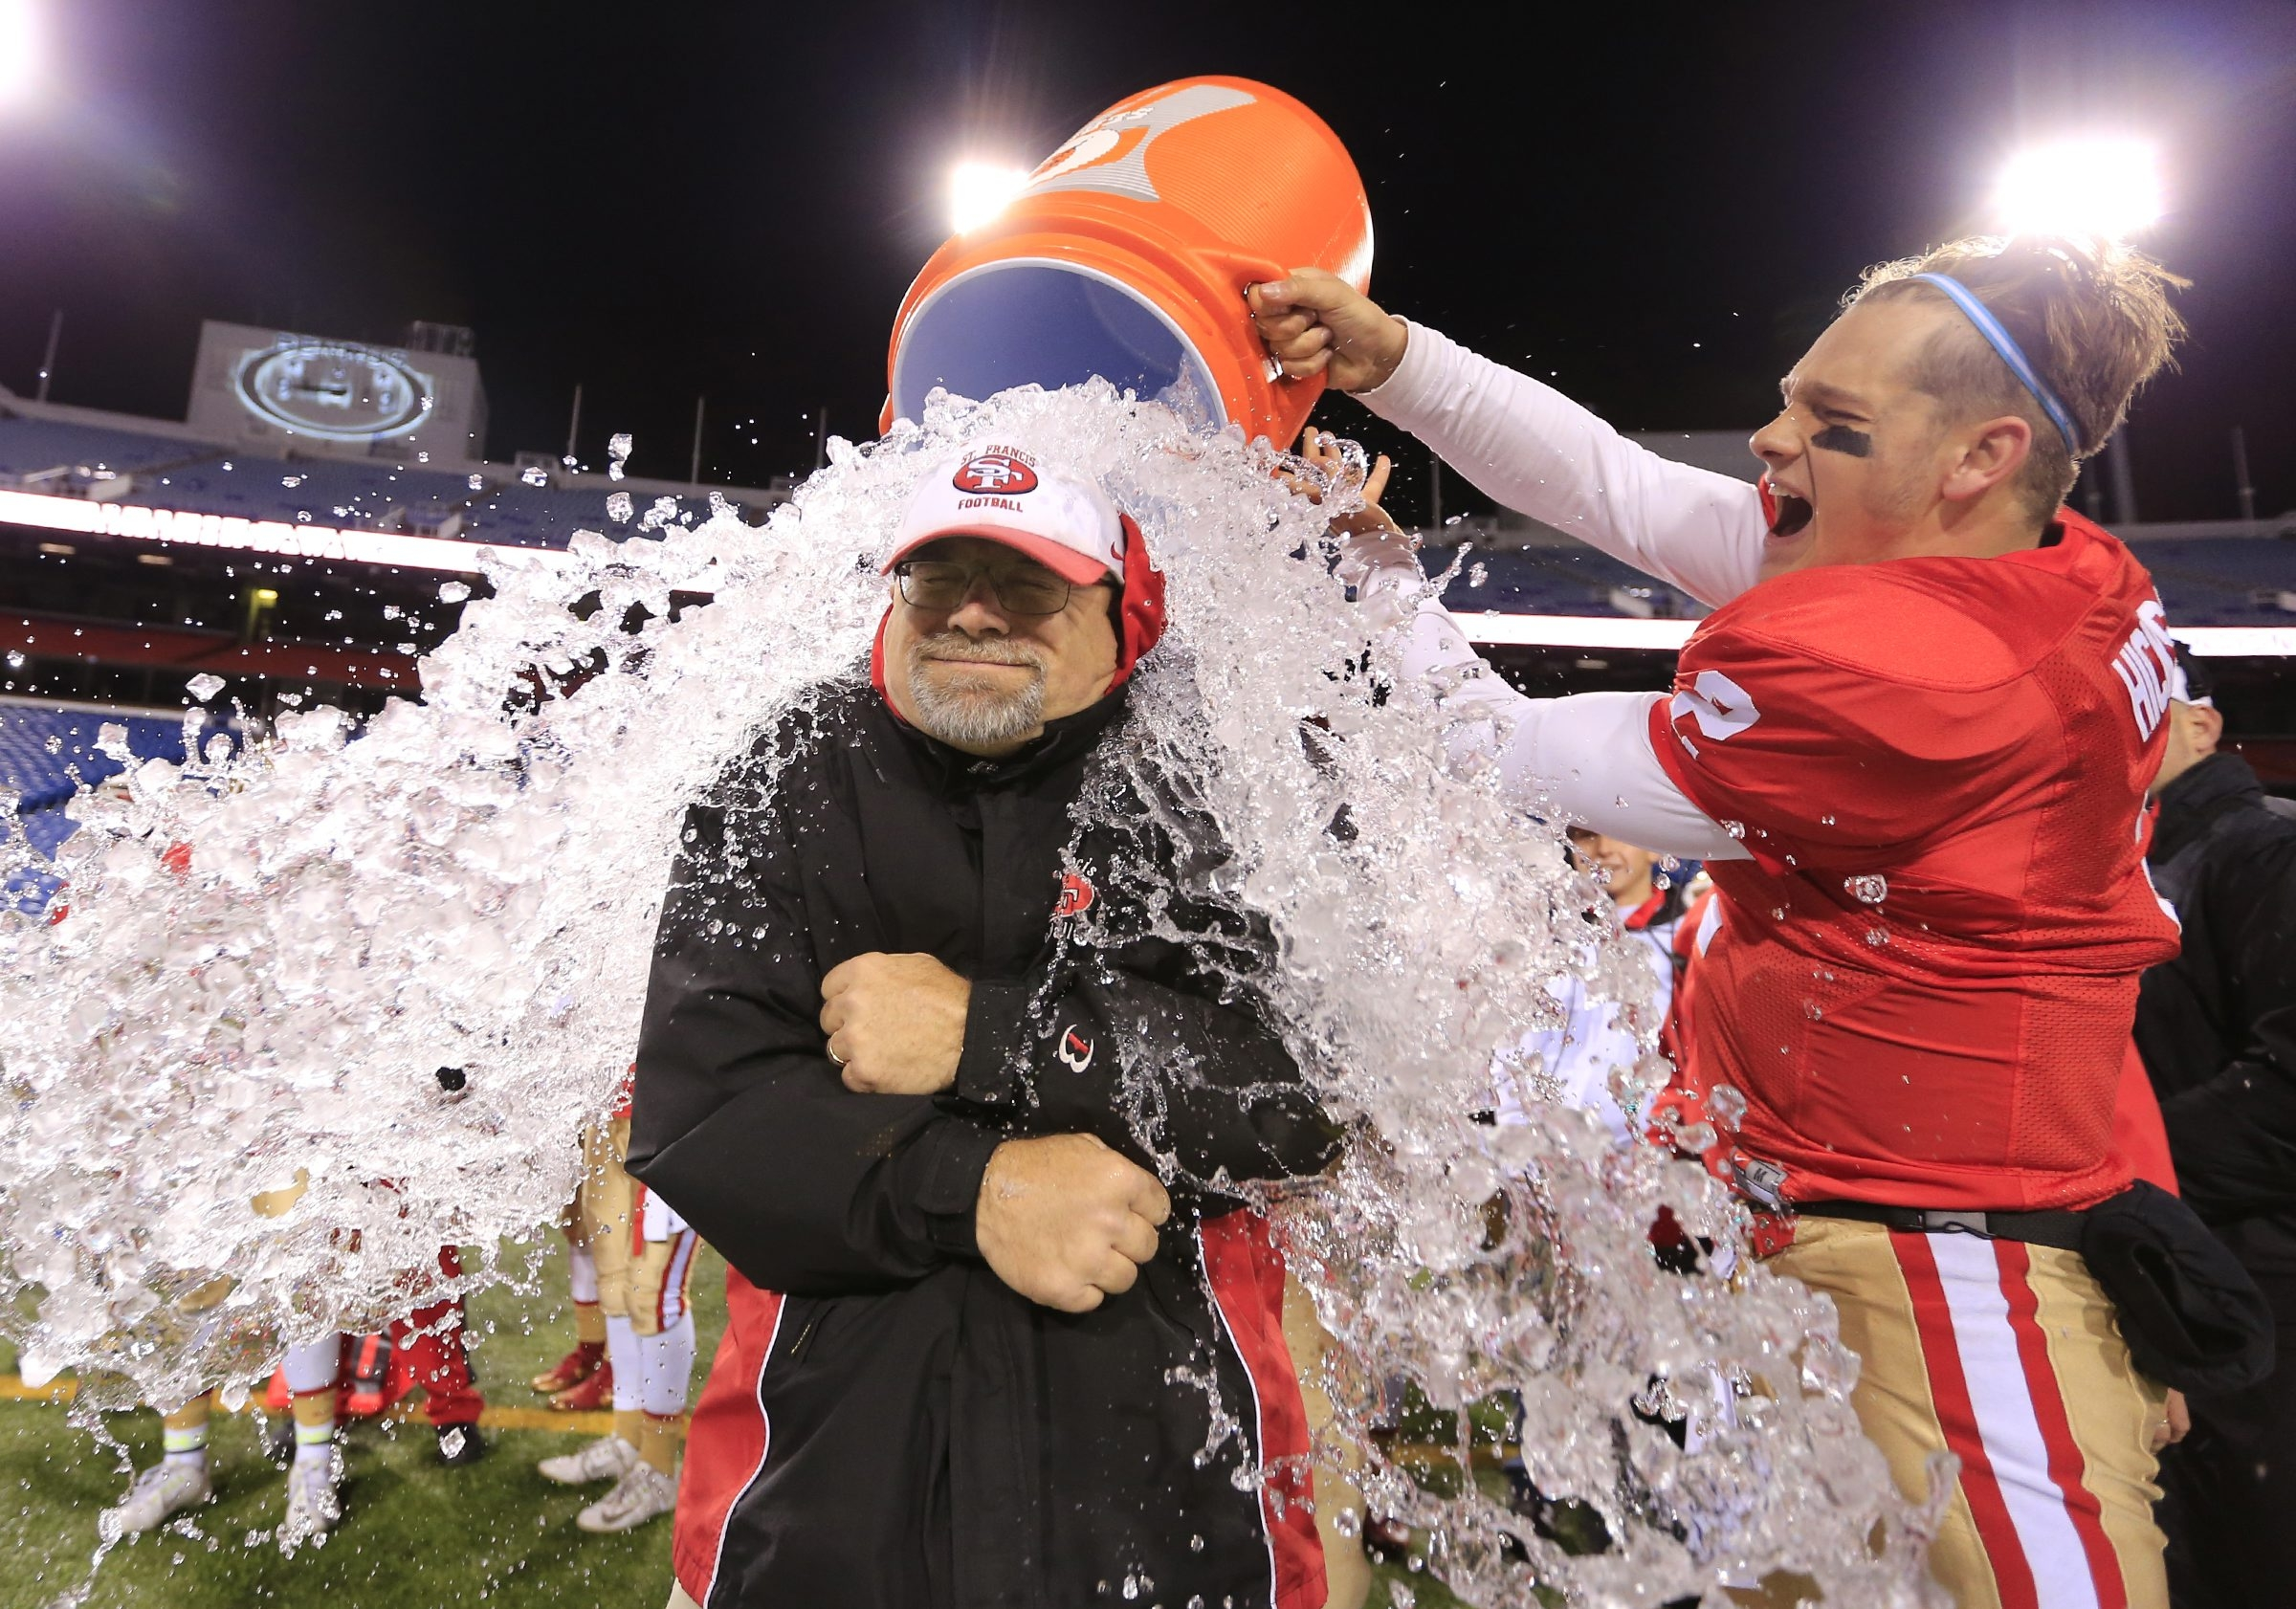 St. Francis coach Jerry Smith takes a chilly shower after his team beat Canisius in the MMA championship game.